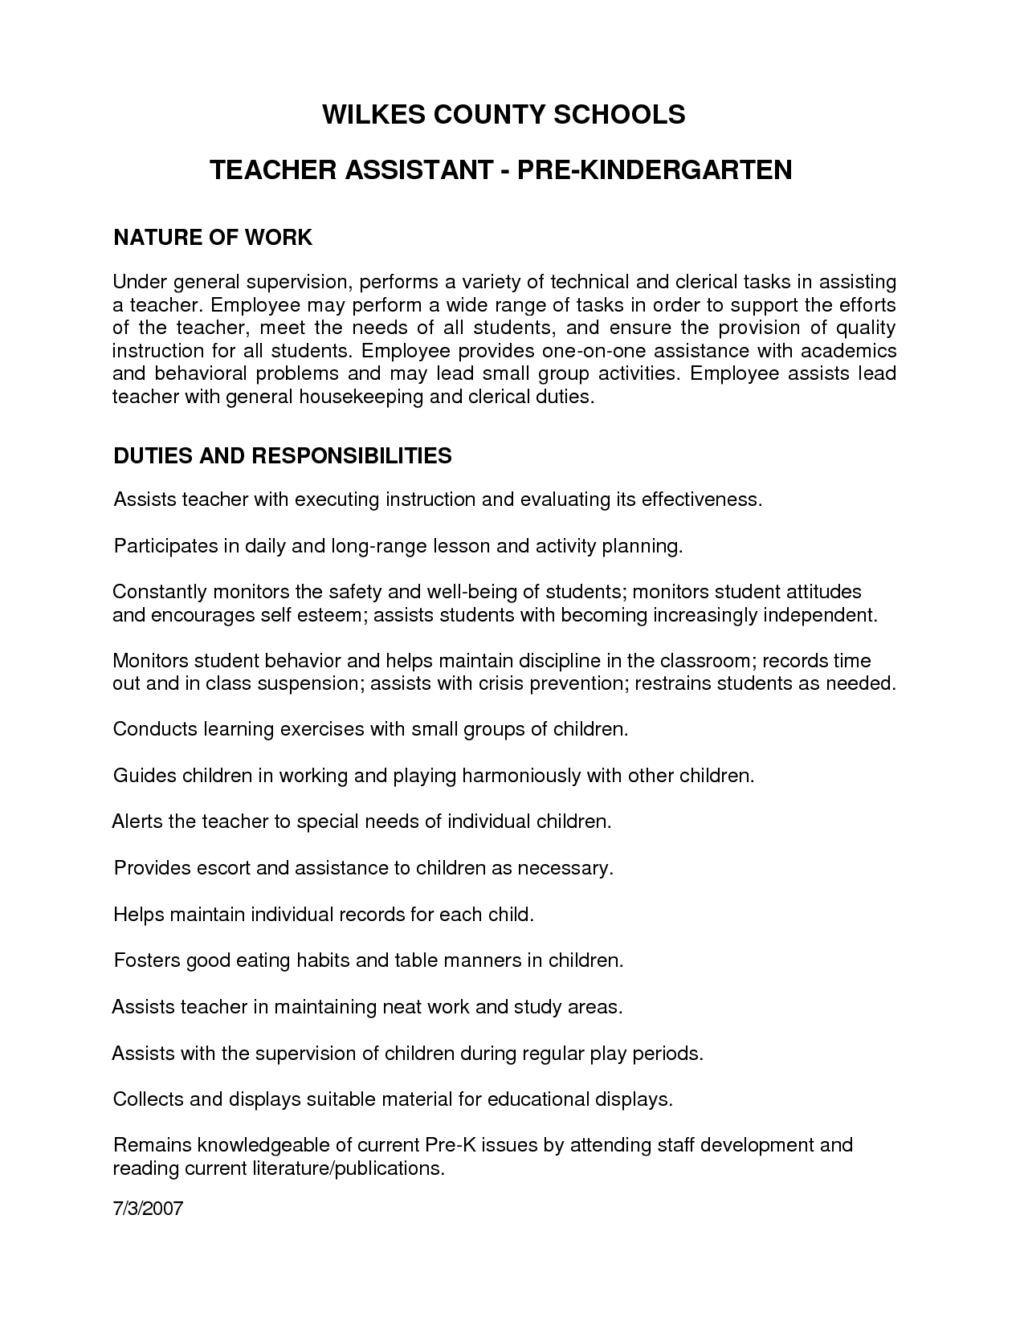 letter recommendation for preschool teacher assistant